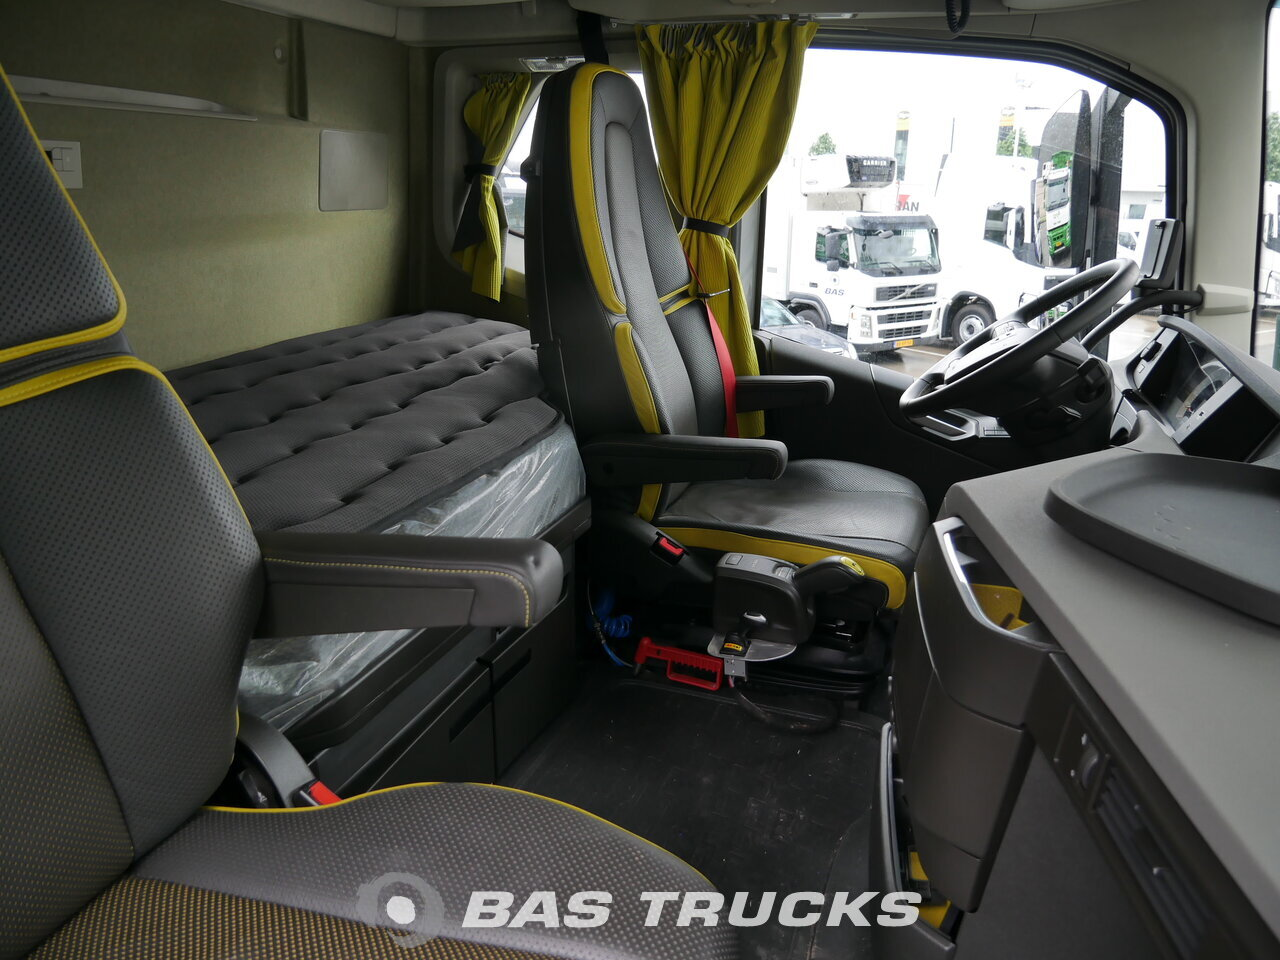 new truck volvo fh16 750 12x6_86737_23